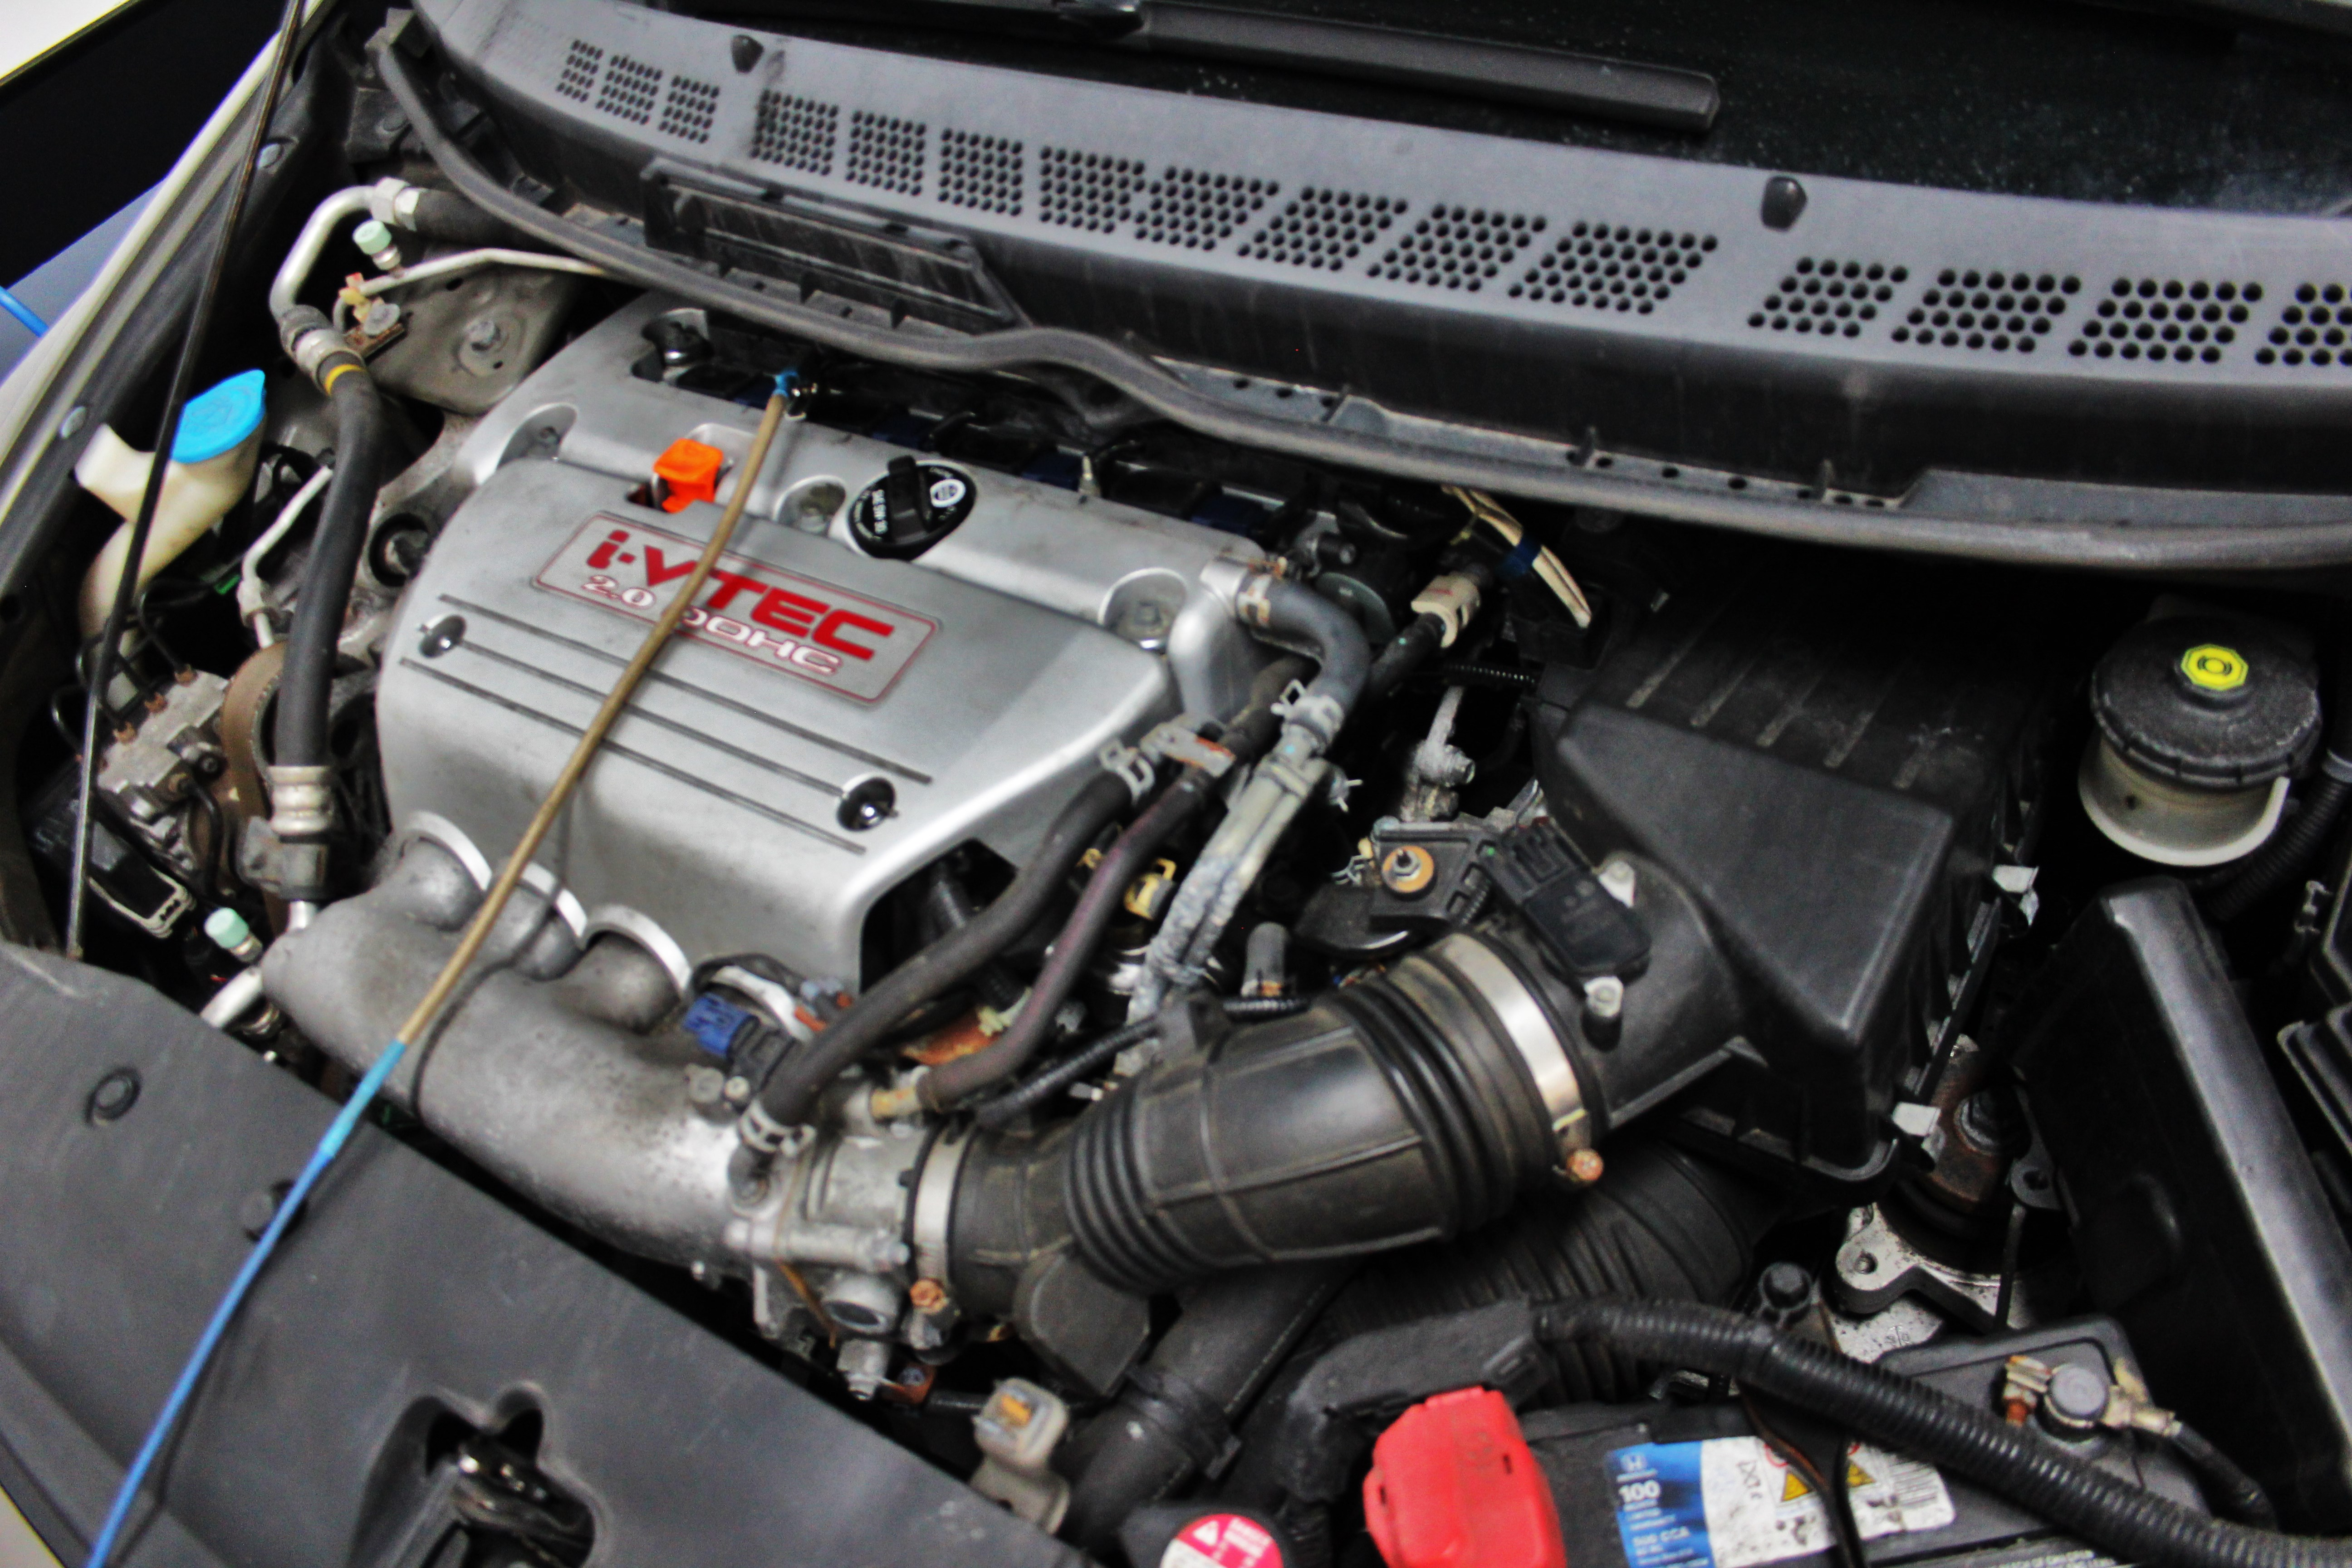 8th Generation Civic Si Intake Development Part 1